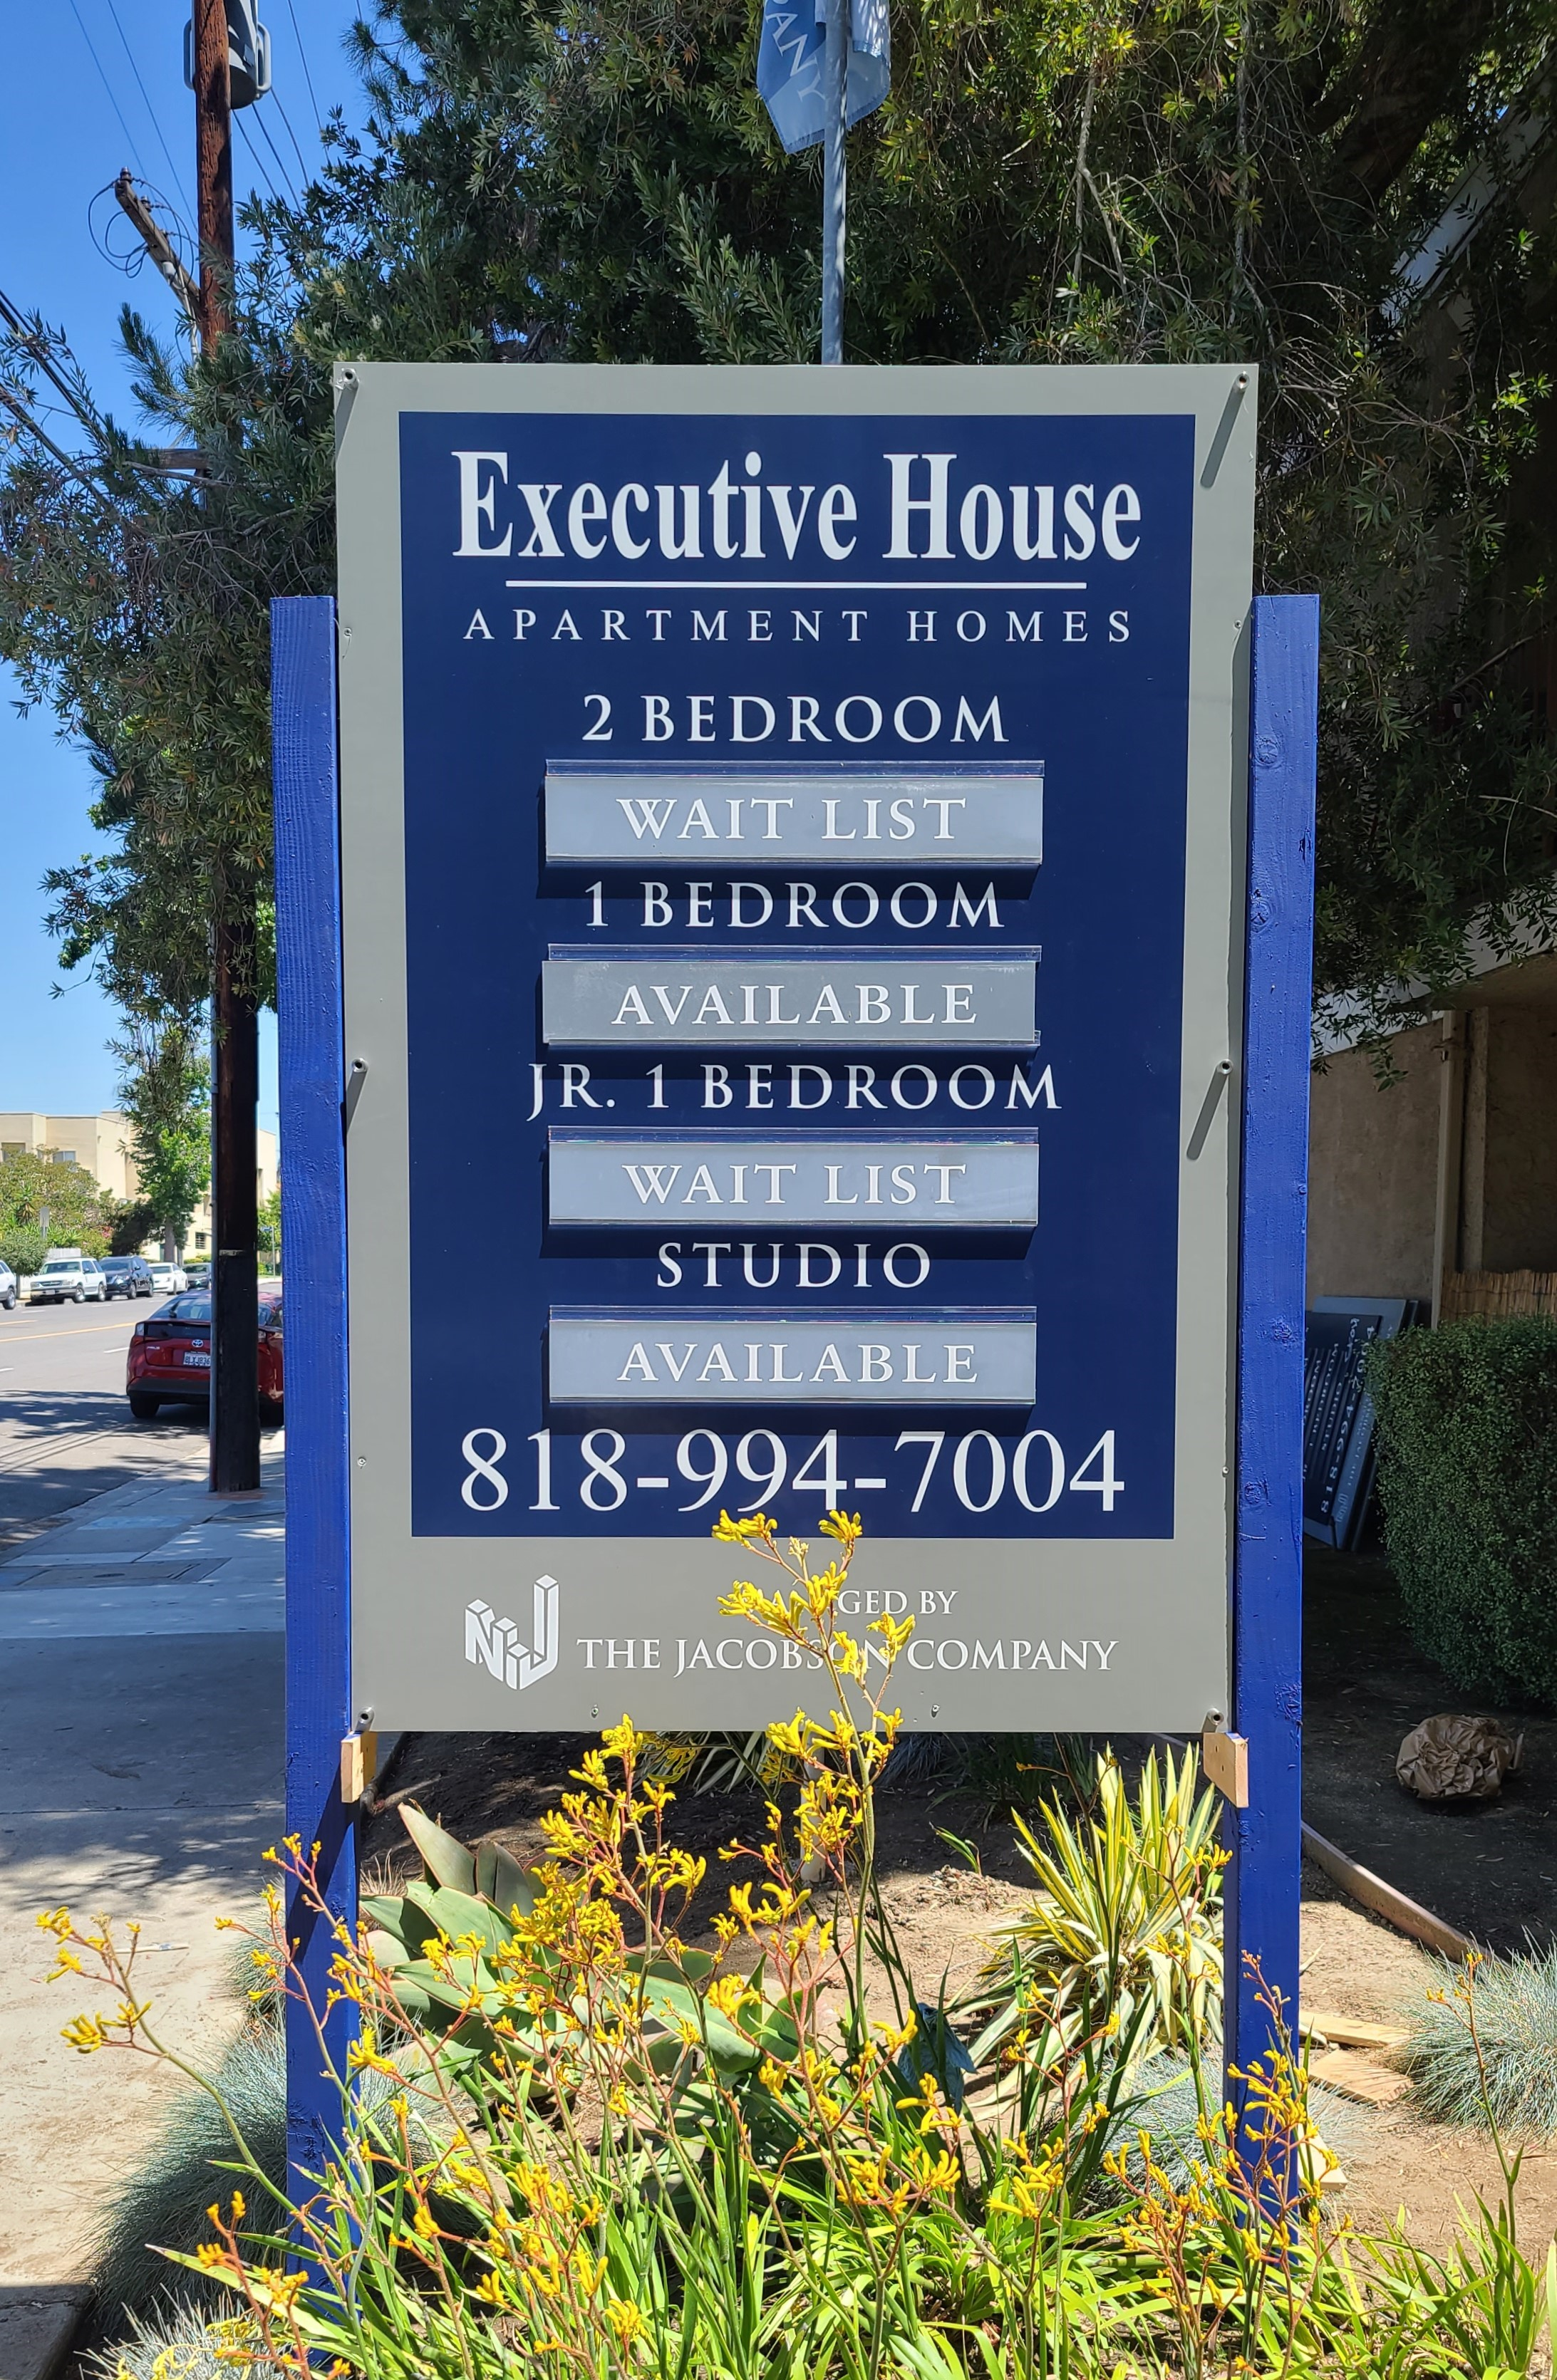 Part of our post and panel sign package for our friends in The Jacobson Company. This acrylic cover over the Van Nuys apartment sign protects it from vandalism.